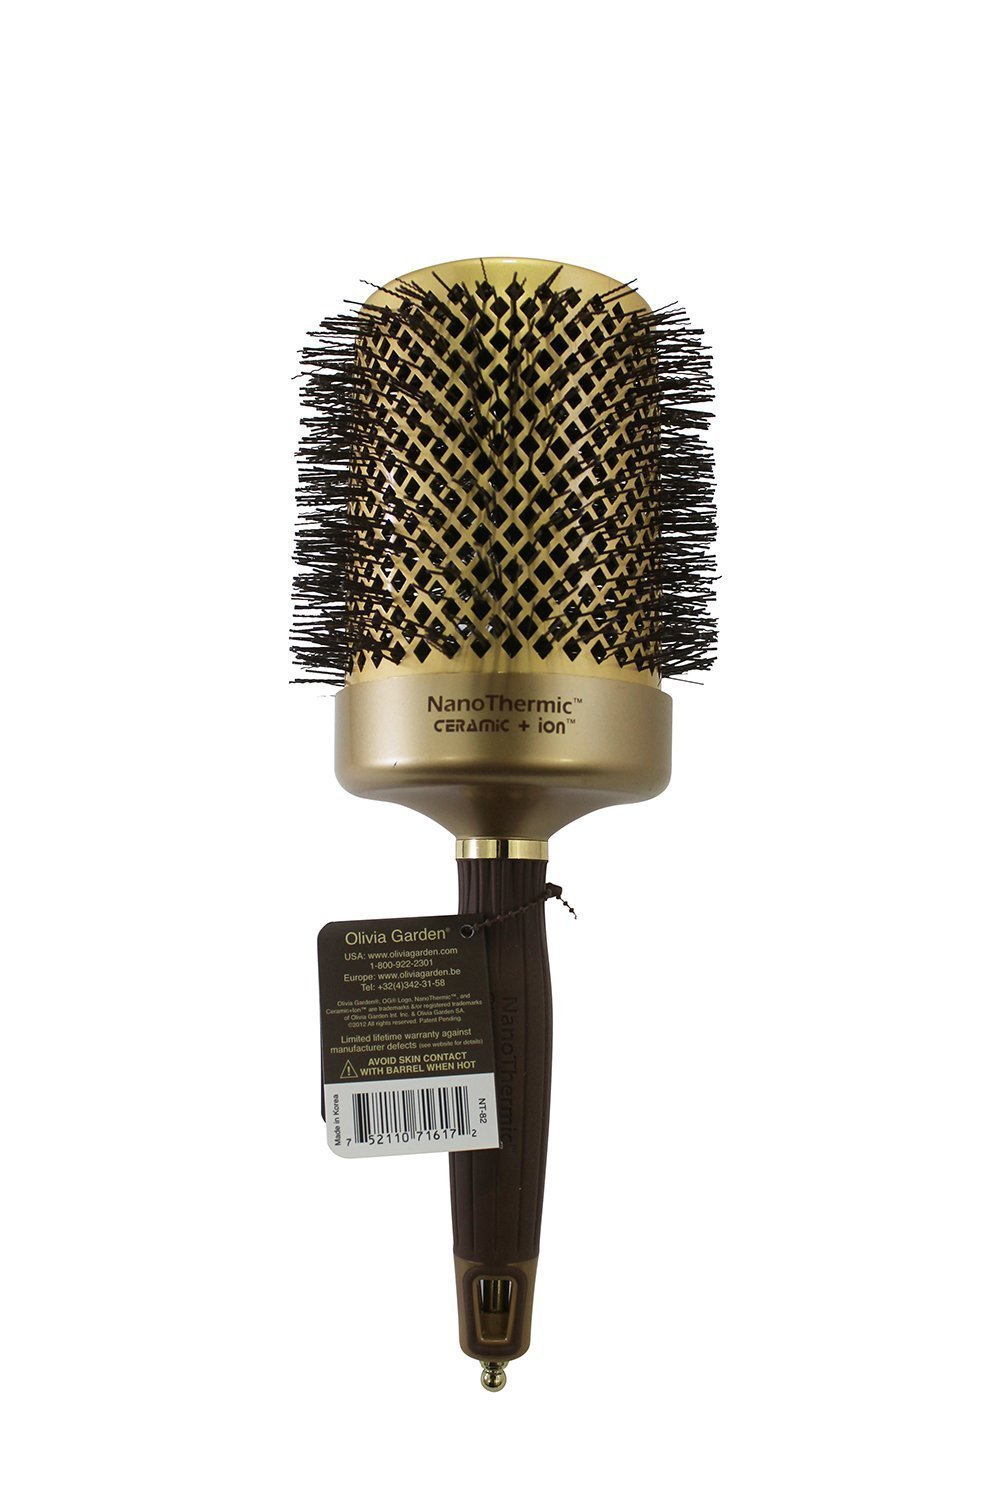 Olivia garden ceramic and ion mega 4 1 4 inch hair brushes beauty Olivia garden nanothermic brush